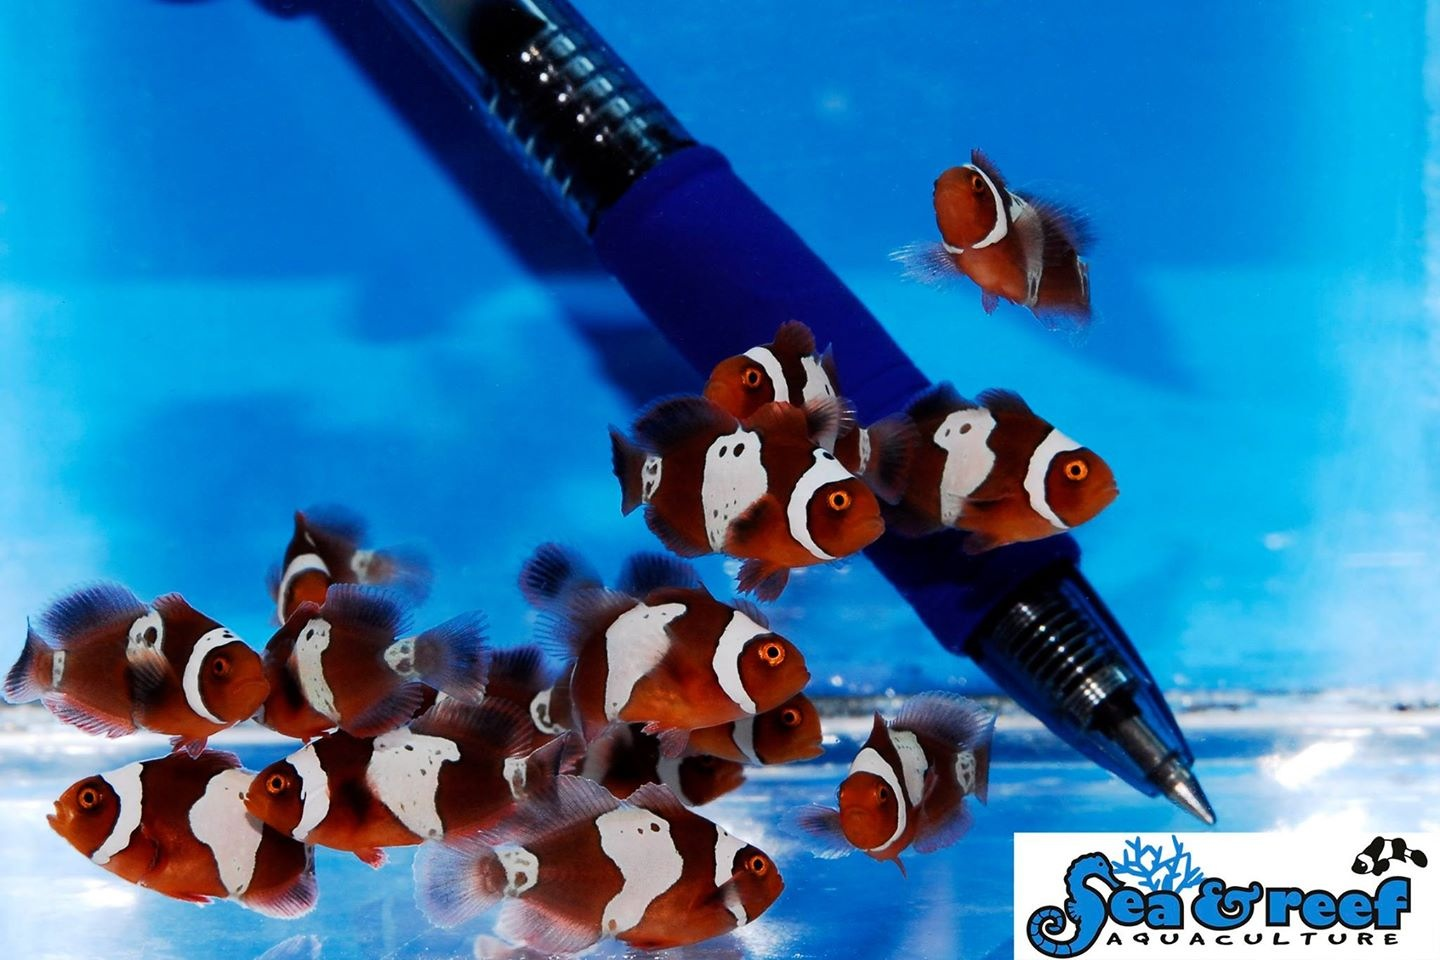 Sea & Reef Aquaculture Lighting Maroon Clownfish